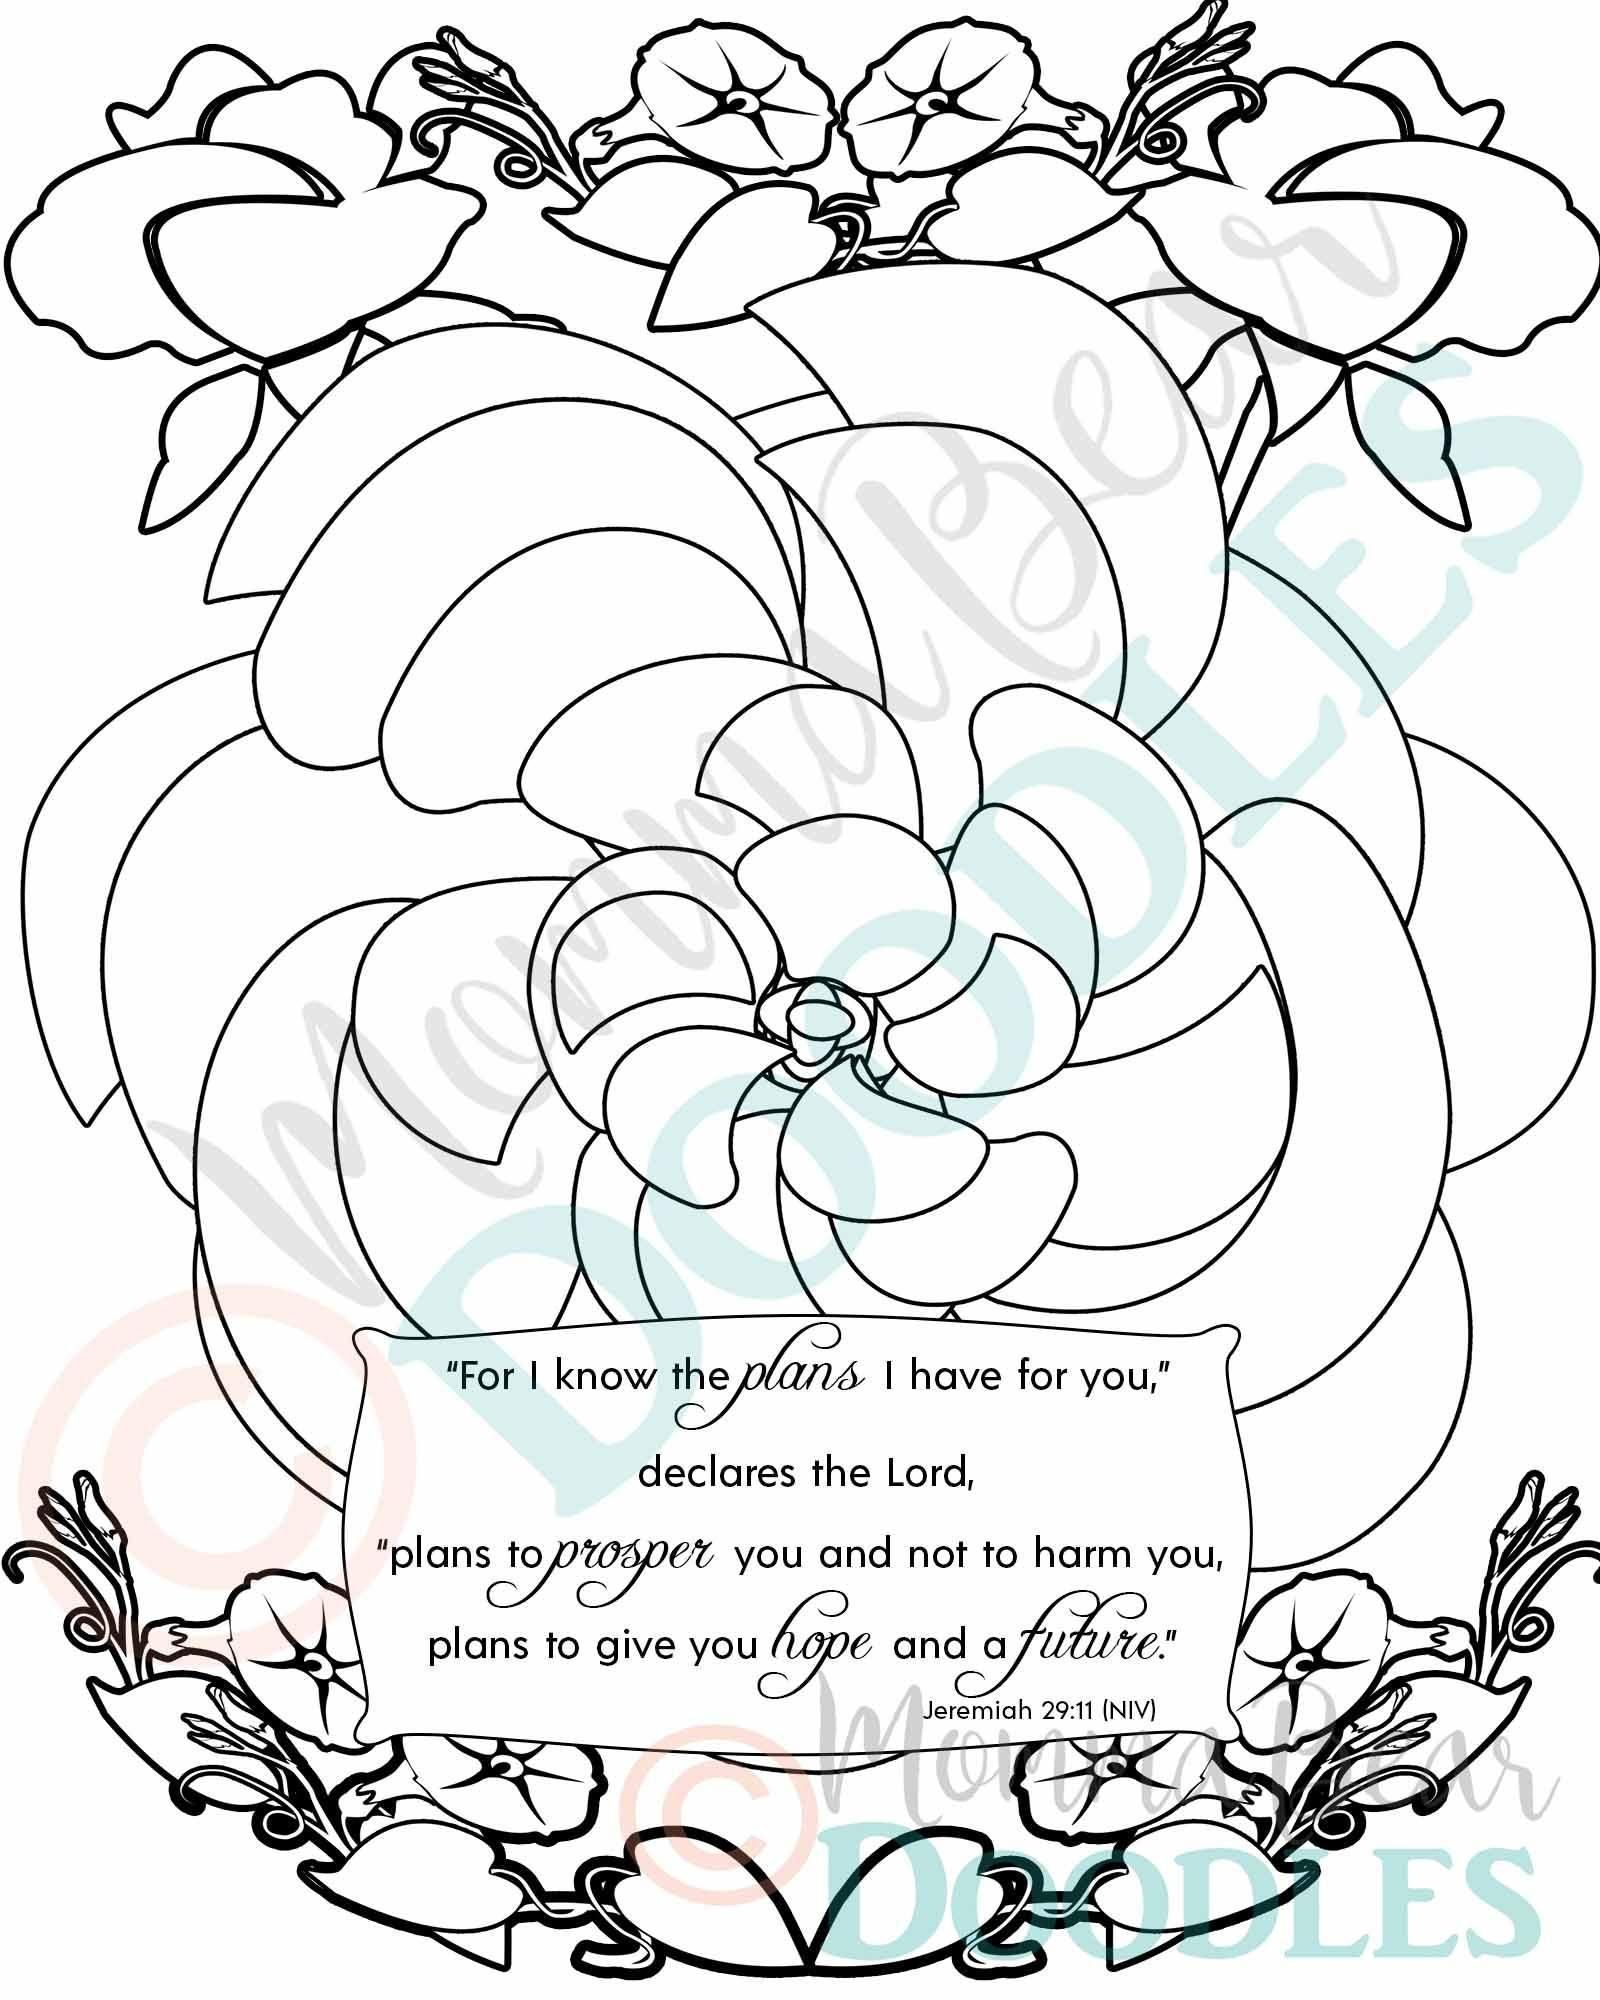 Fine Coloring Page Jeremiah 29 11 That You Must Know You Re In